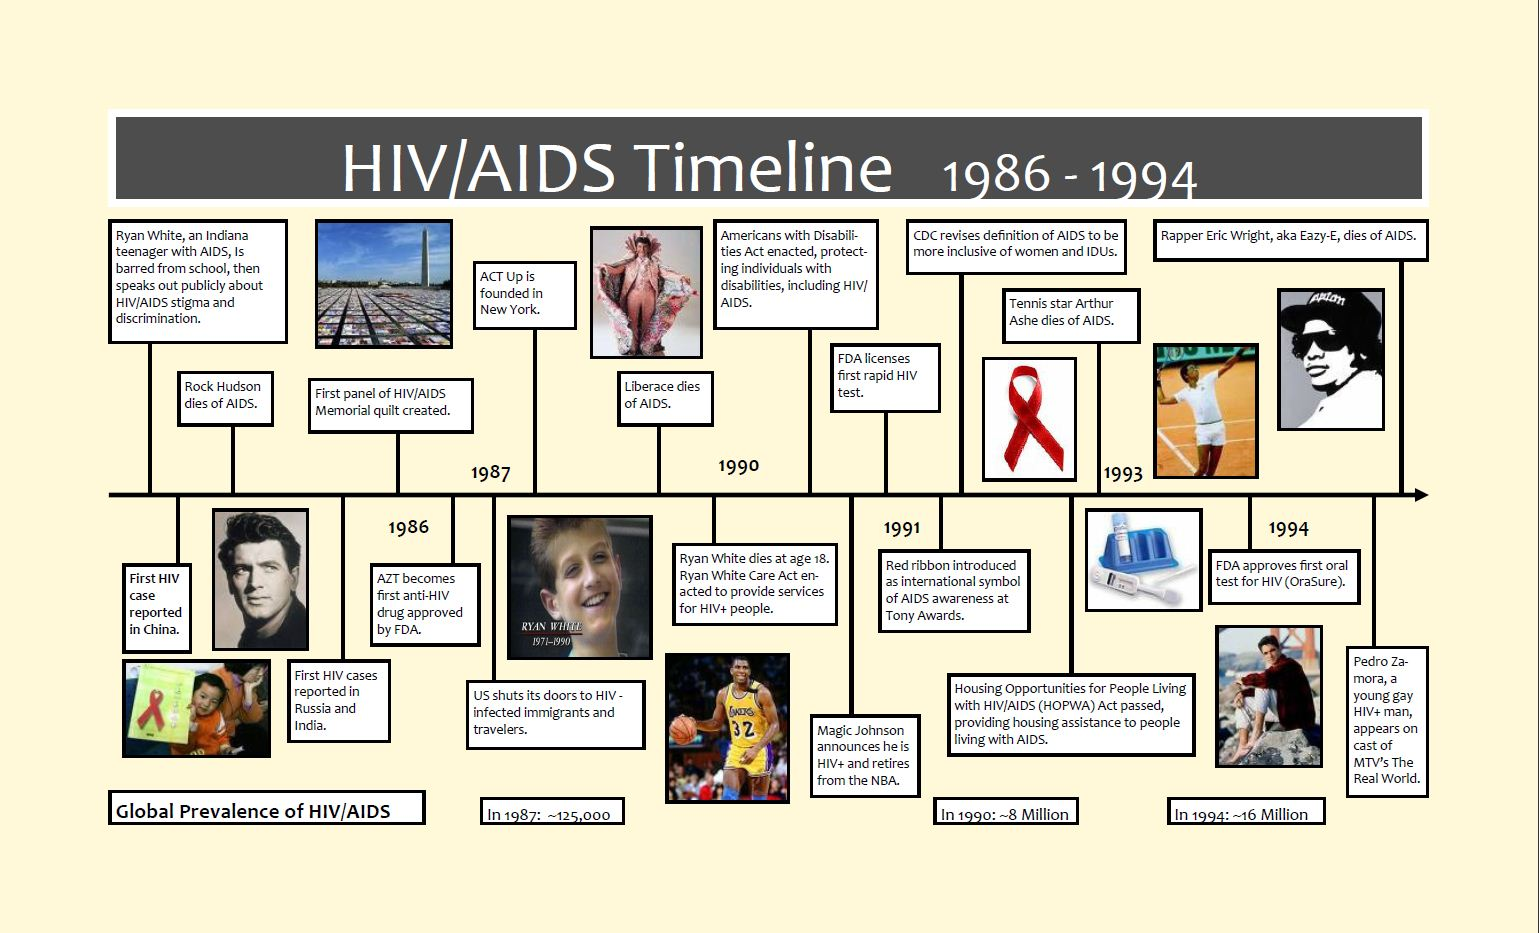 an introduction to the history of aids Enferm infecc microbiol clin 2008 oct26 suppl 11:1-4 [introduction a brief  history of aids] [article in spanish] alcamí j(1) author information: (1)unidad  de.